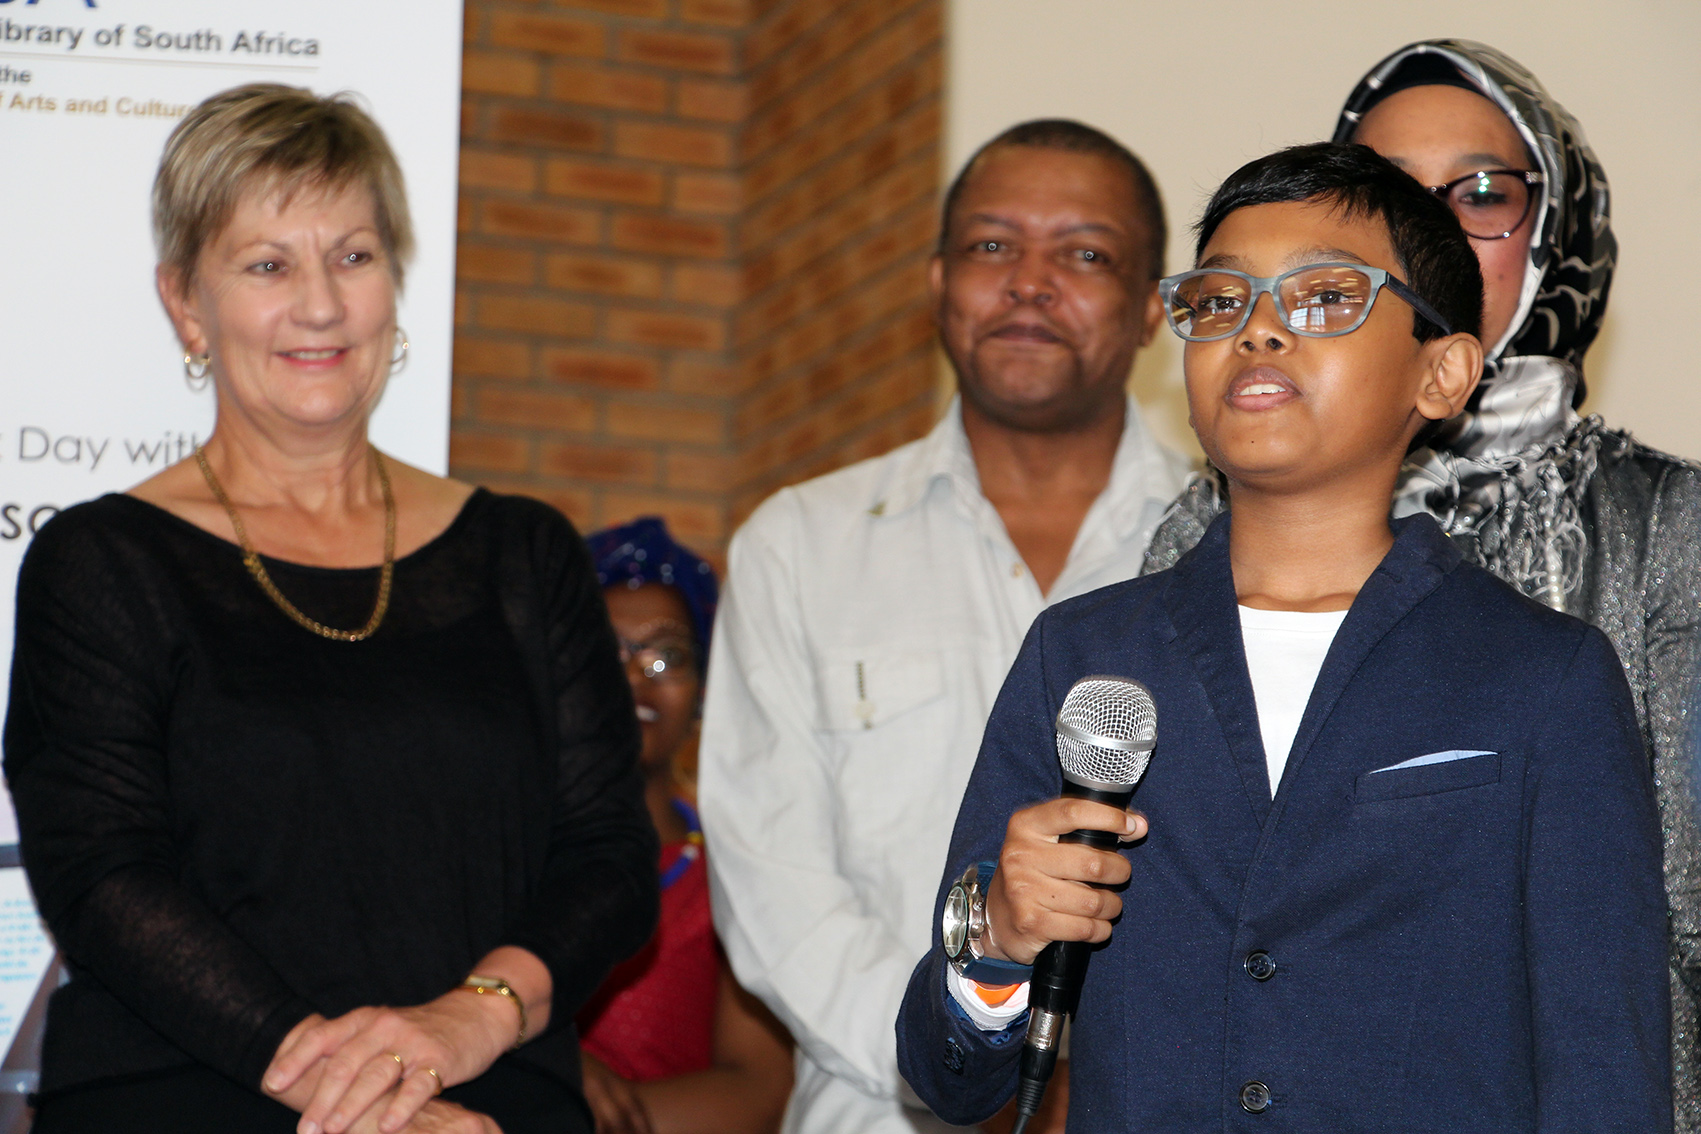 Amr Salie gave an inspirational talk about books and how they changes his life while Minister Anroux Marais looked on